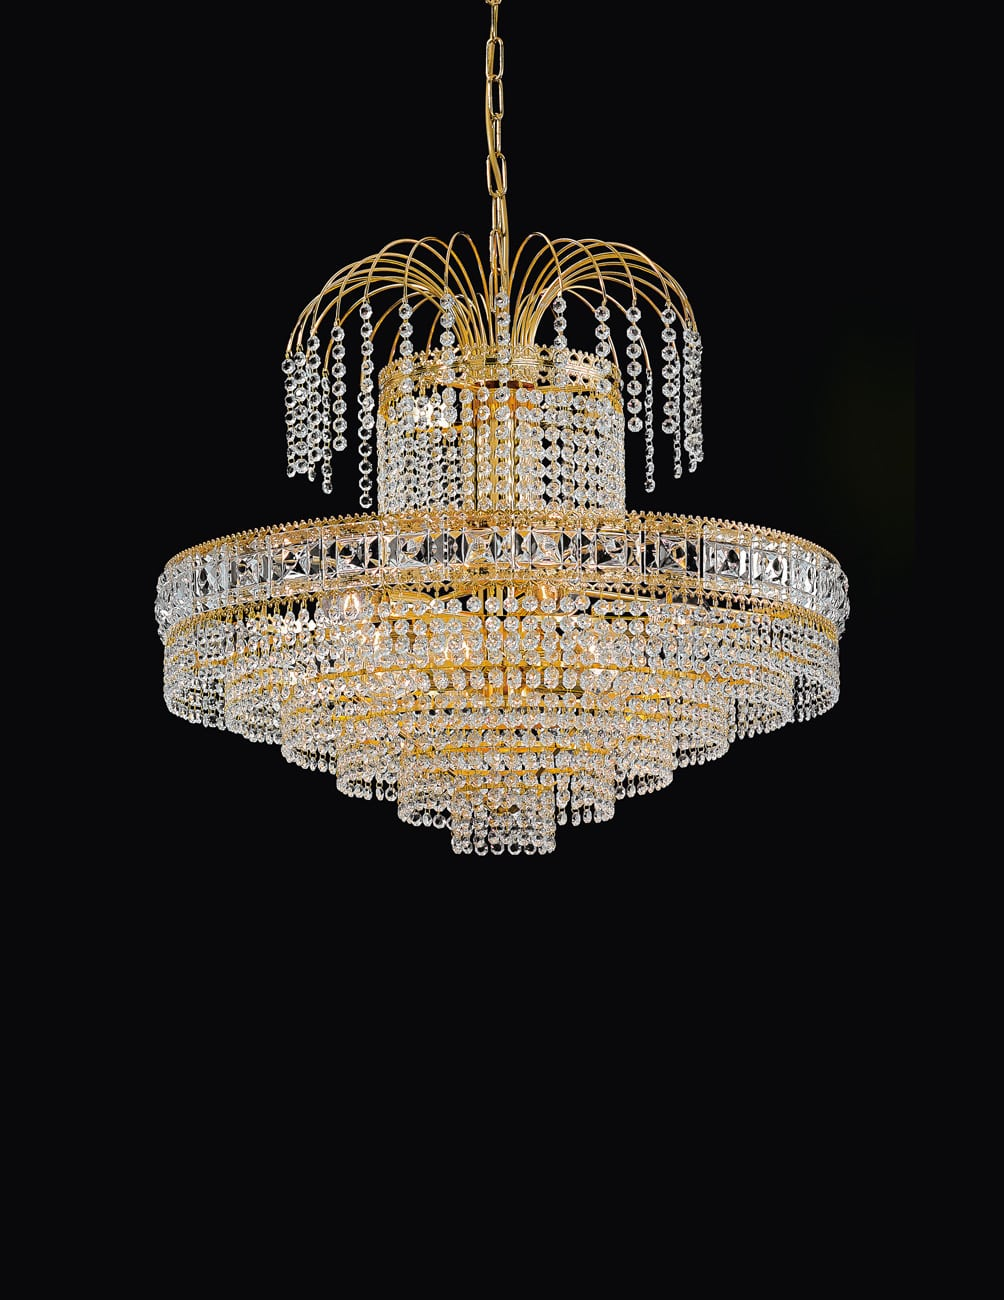 decorative lighting chandeliers 71